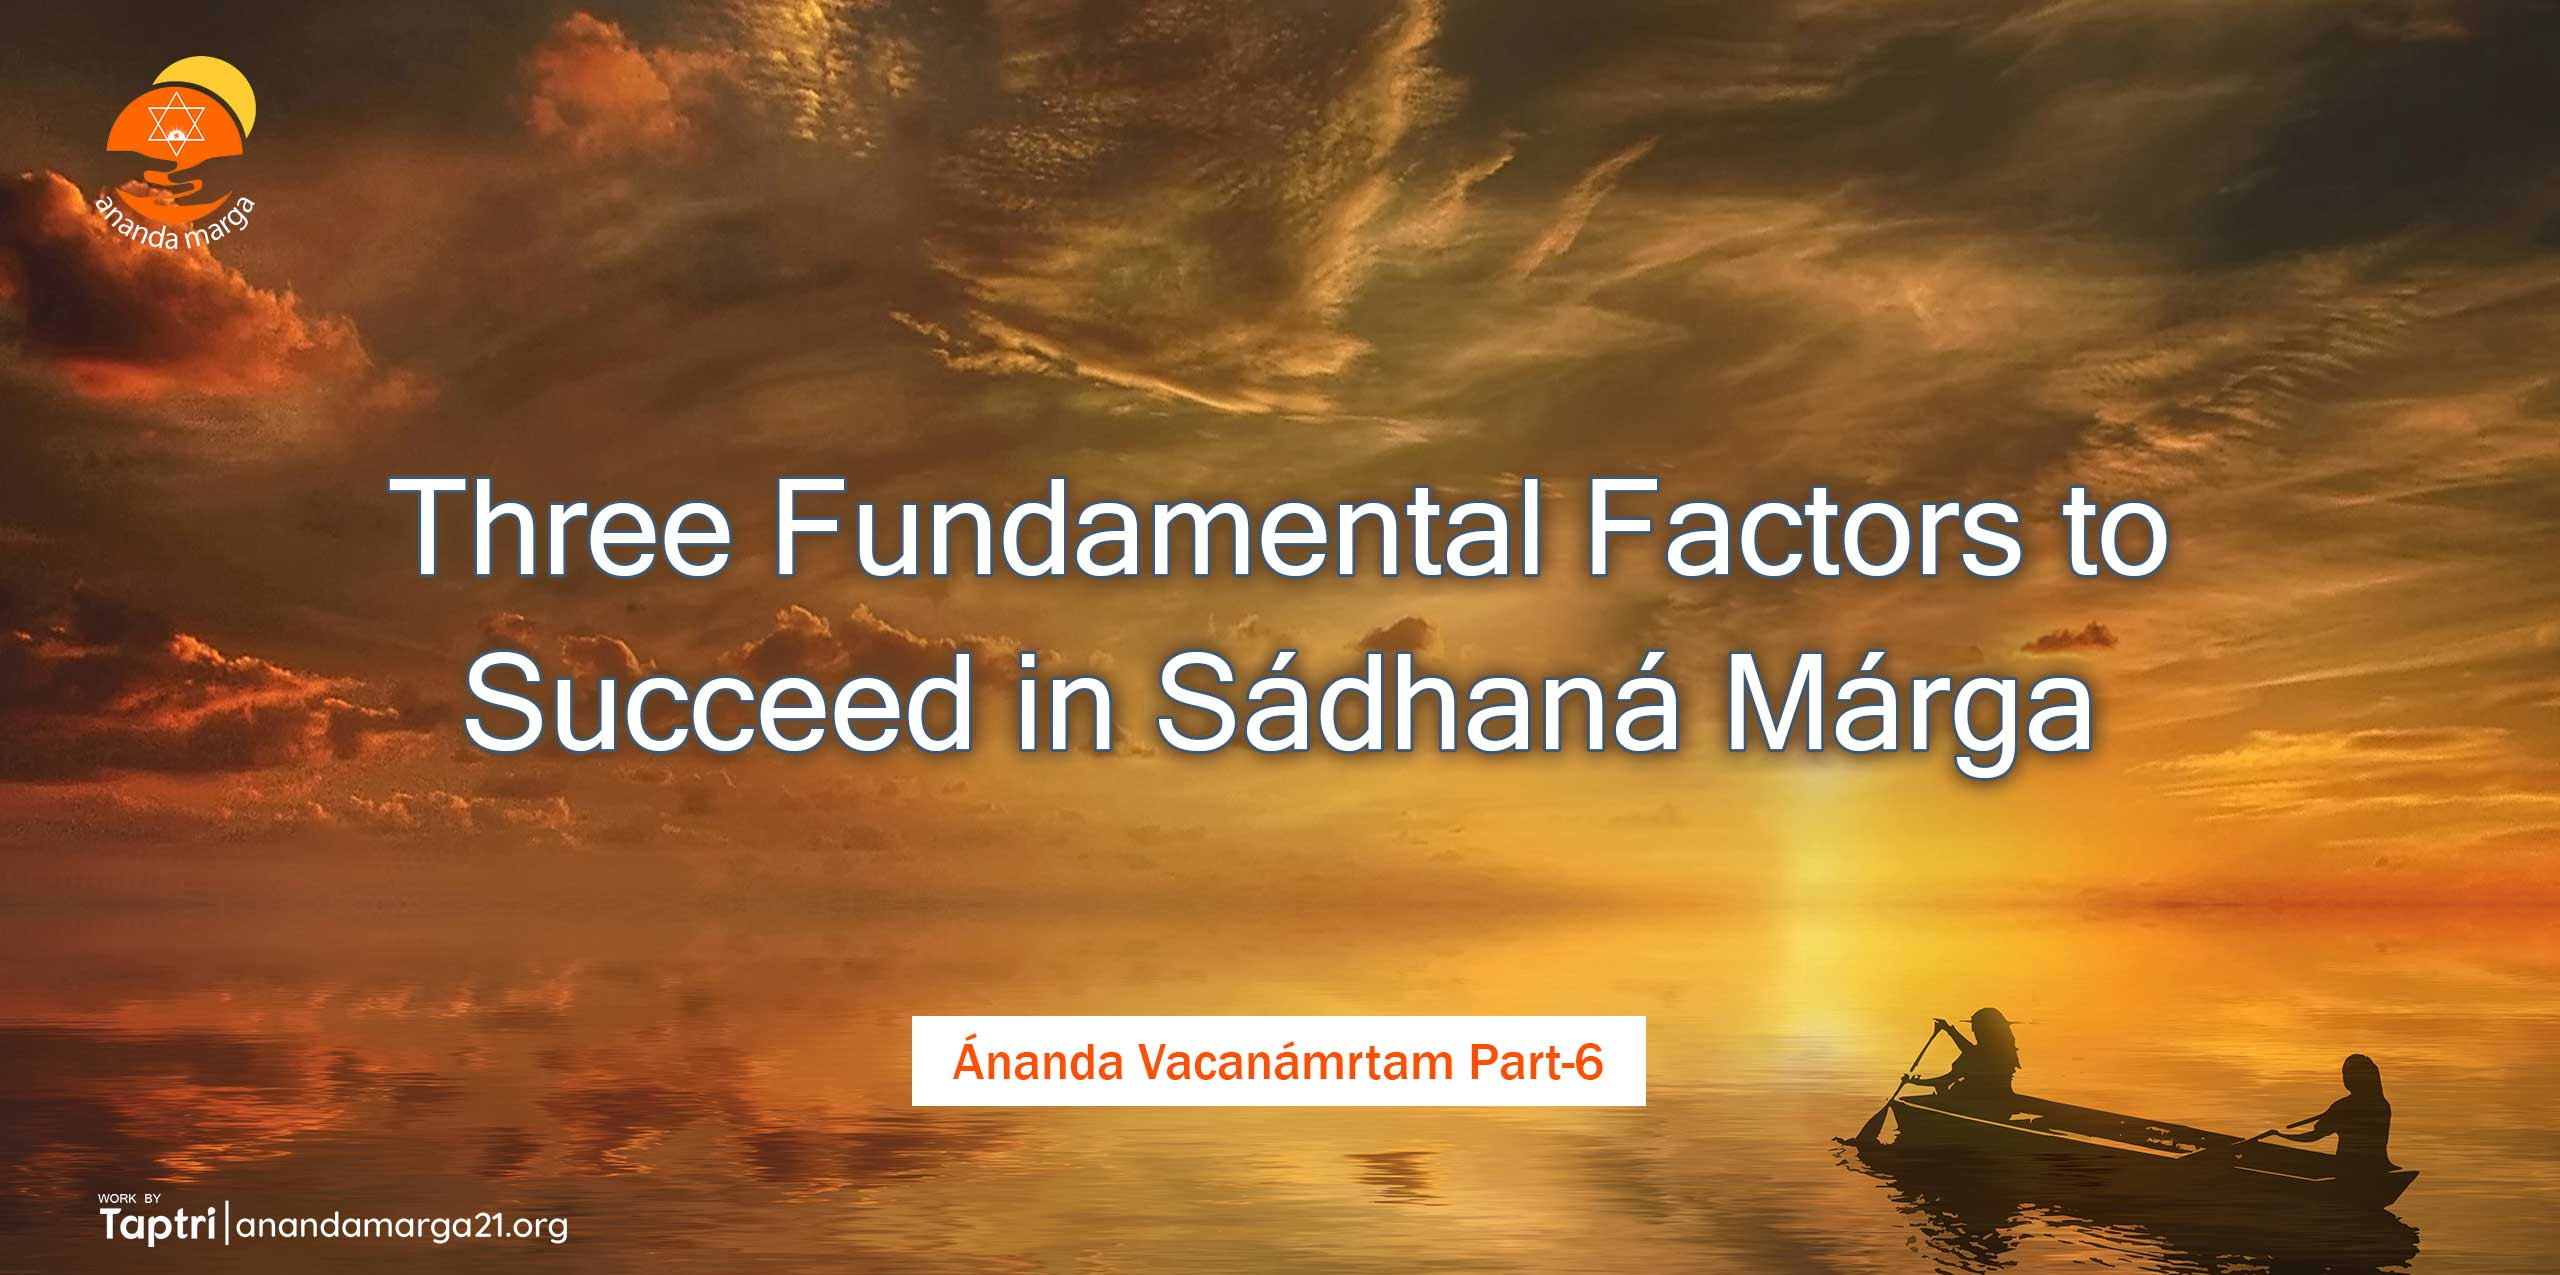 Three-Fundamental-Factors-to-Succeed-in-Sadhana-Marga-Ananda-Vacanamrtm-06-anandamarga